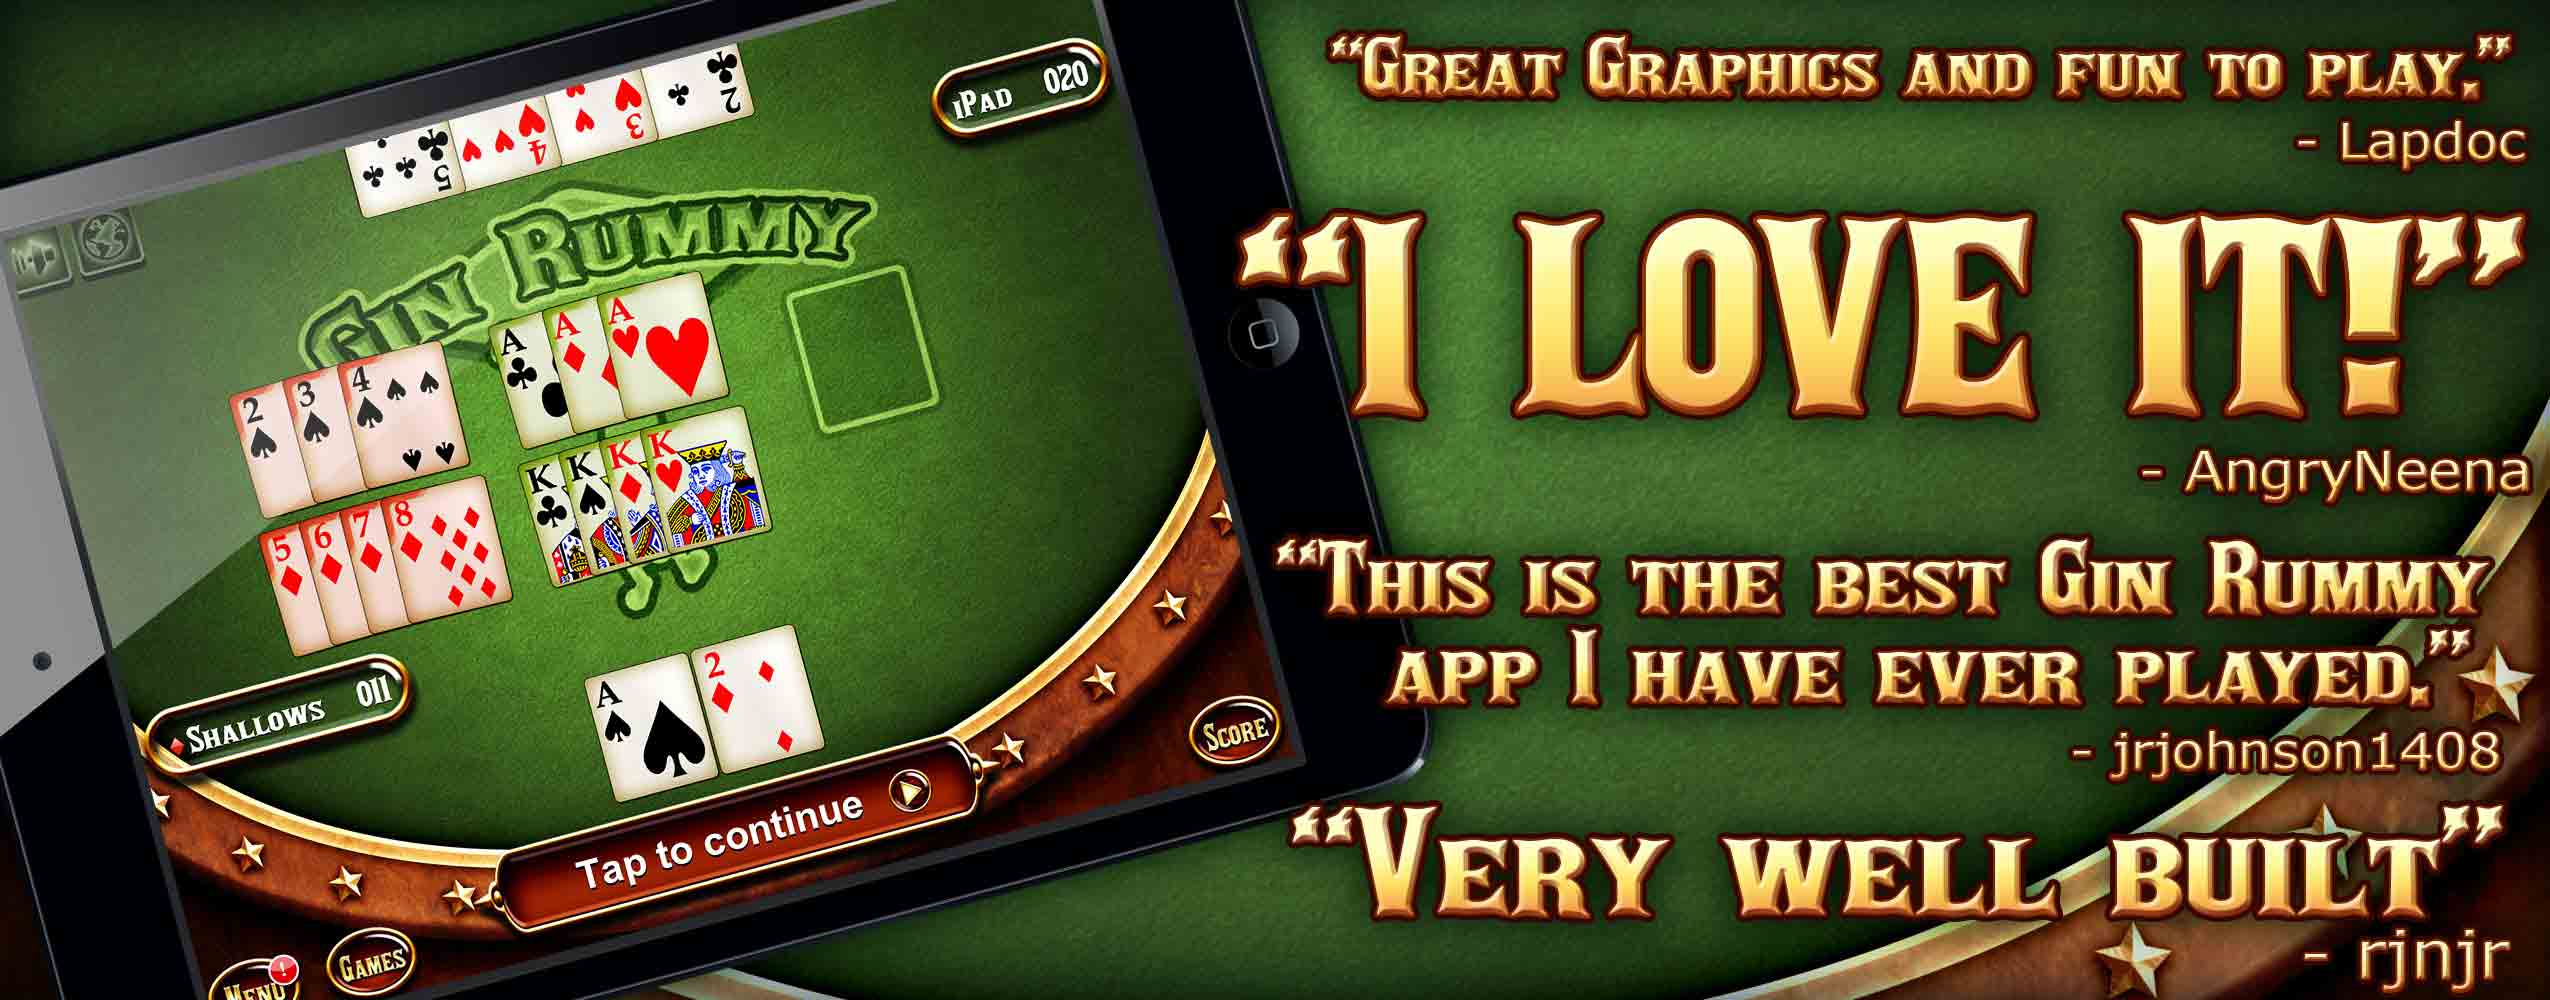 Gin Rummy Player Feedback